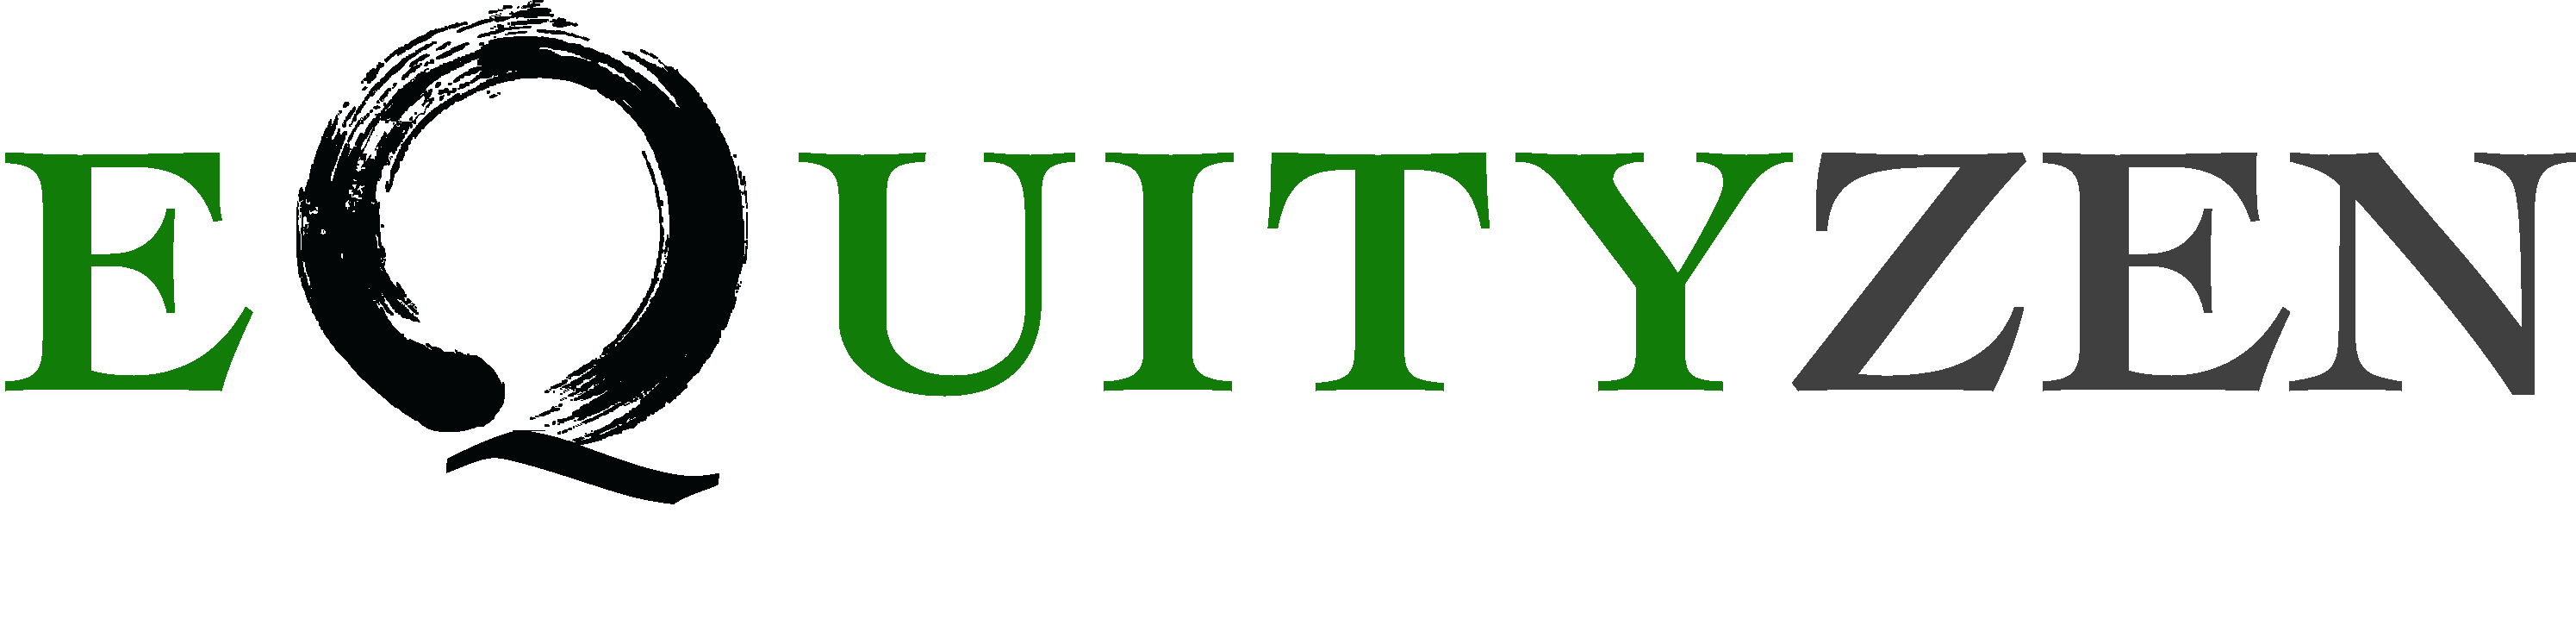 EquityZen Growth Opportunity Fund VI LLC - Series 2 Stock